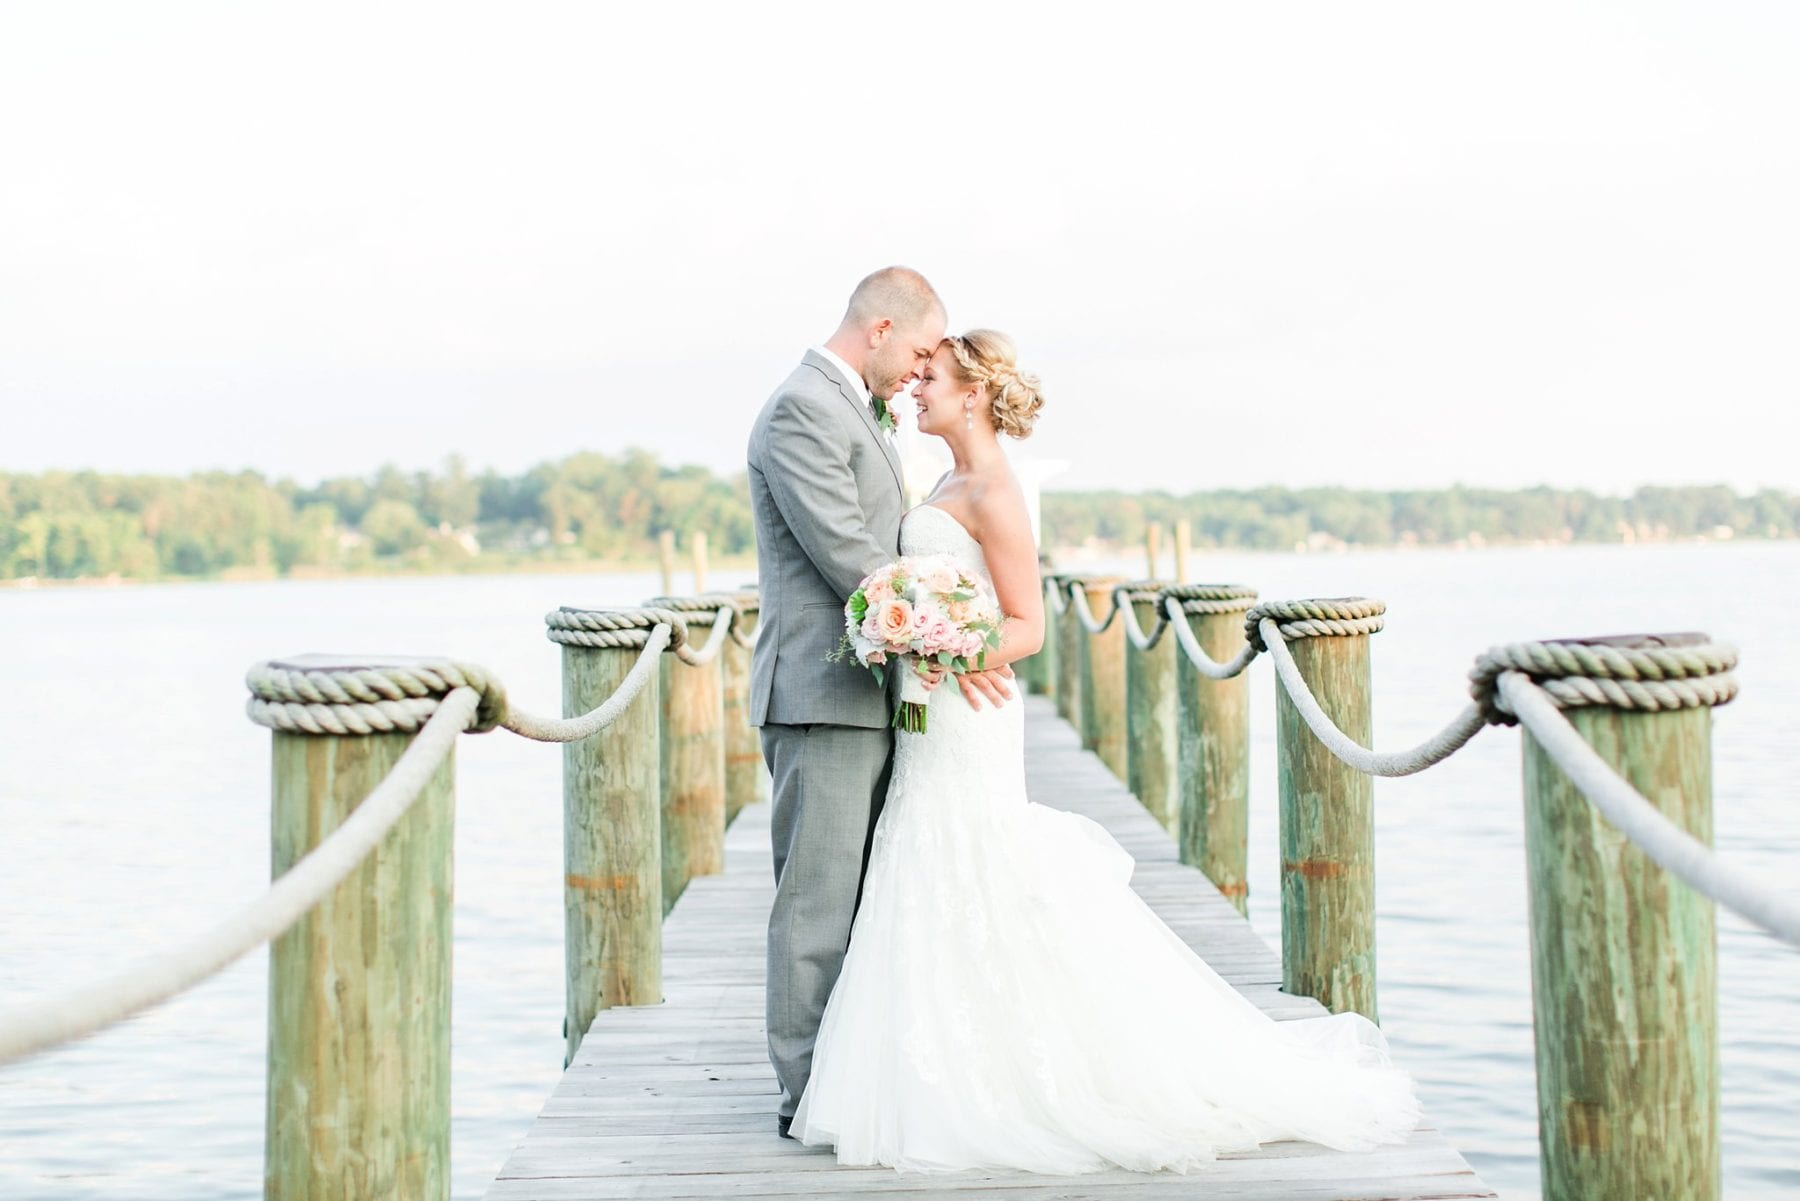 Waters Edge Wedding Photos Maryland Wedding Photographer Megan Kelsey Photography Katie & Conor-542.JPG